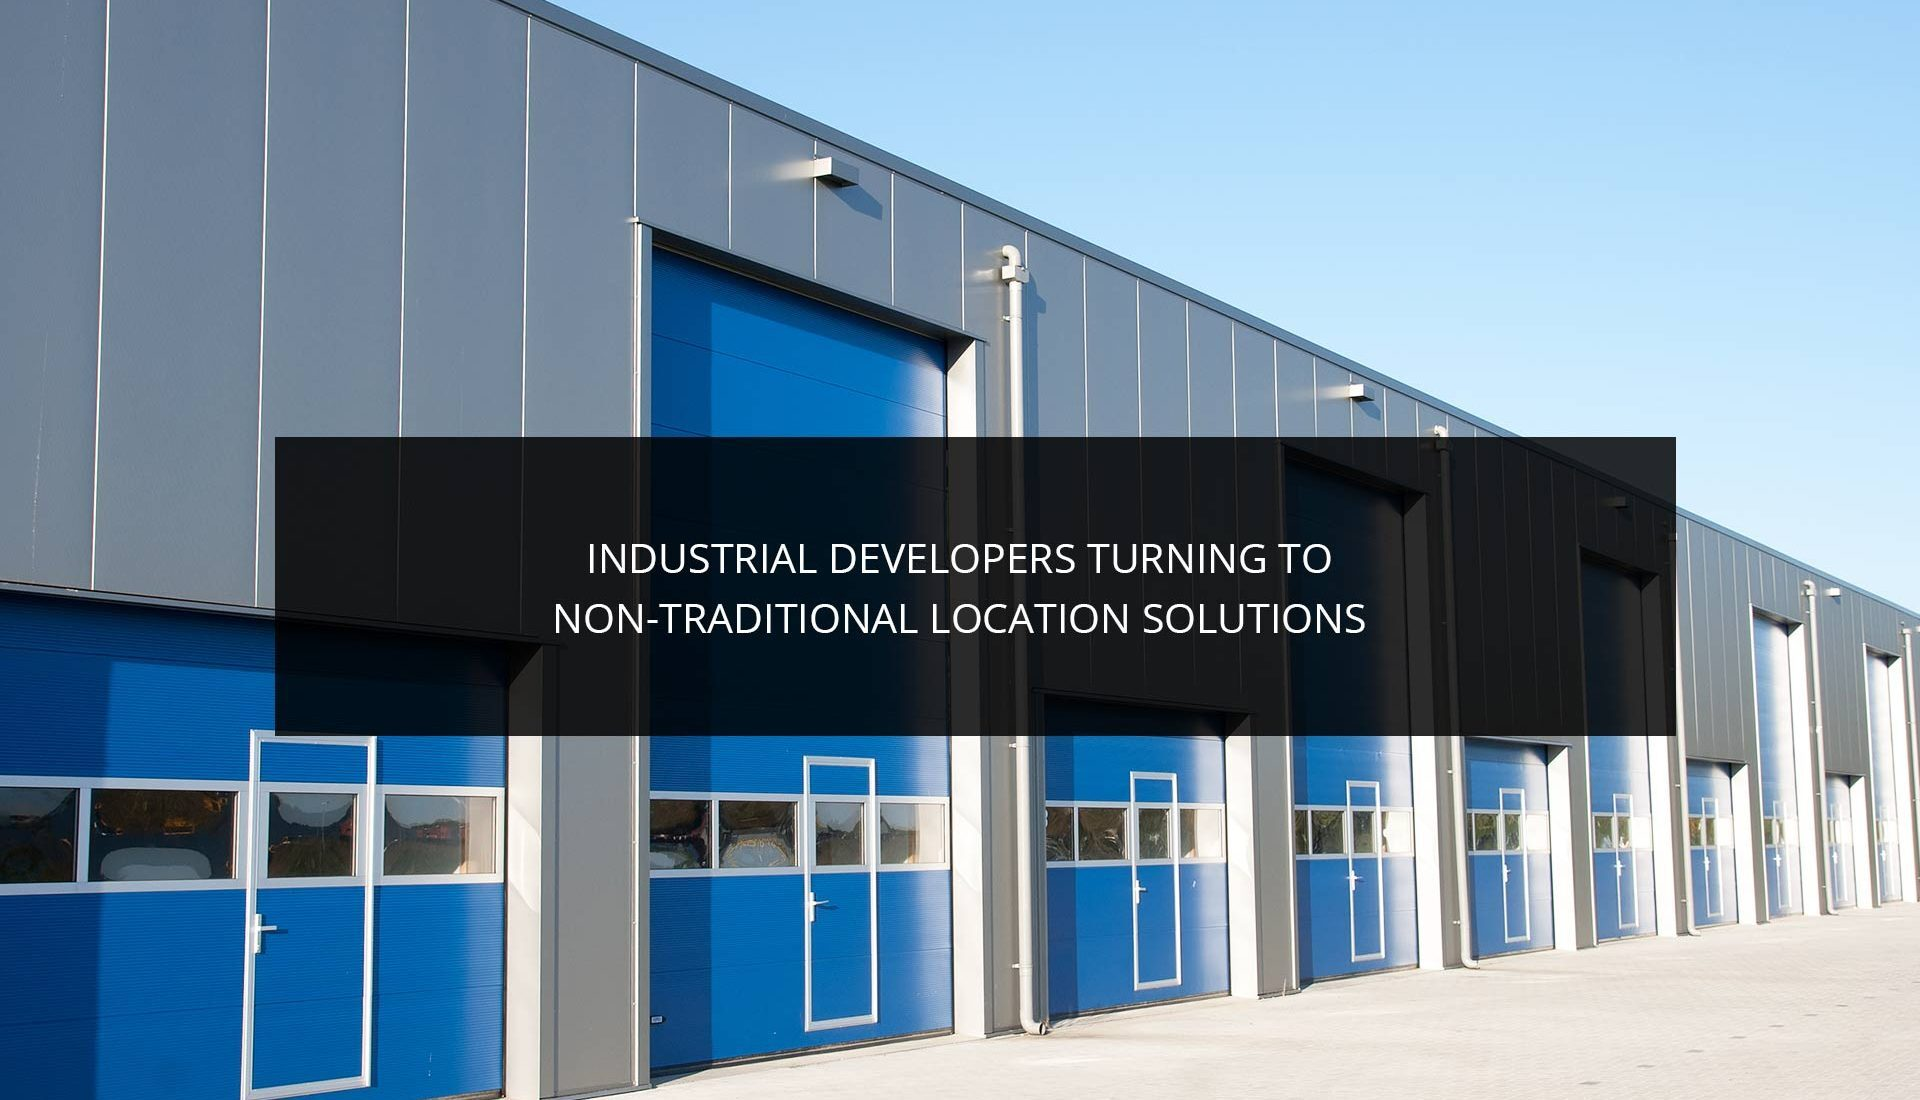 Industrial Developers Turning to Non-Traditional Location Solutions